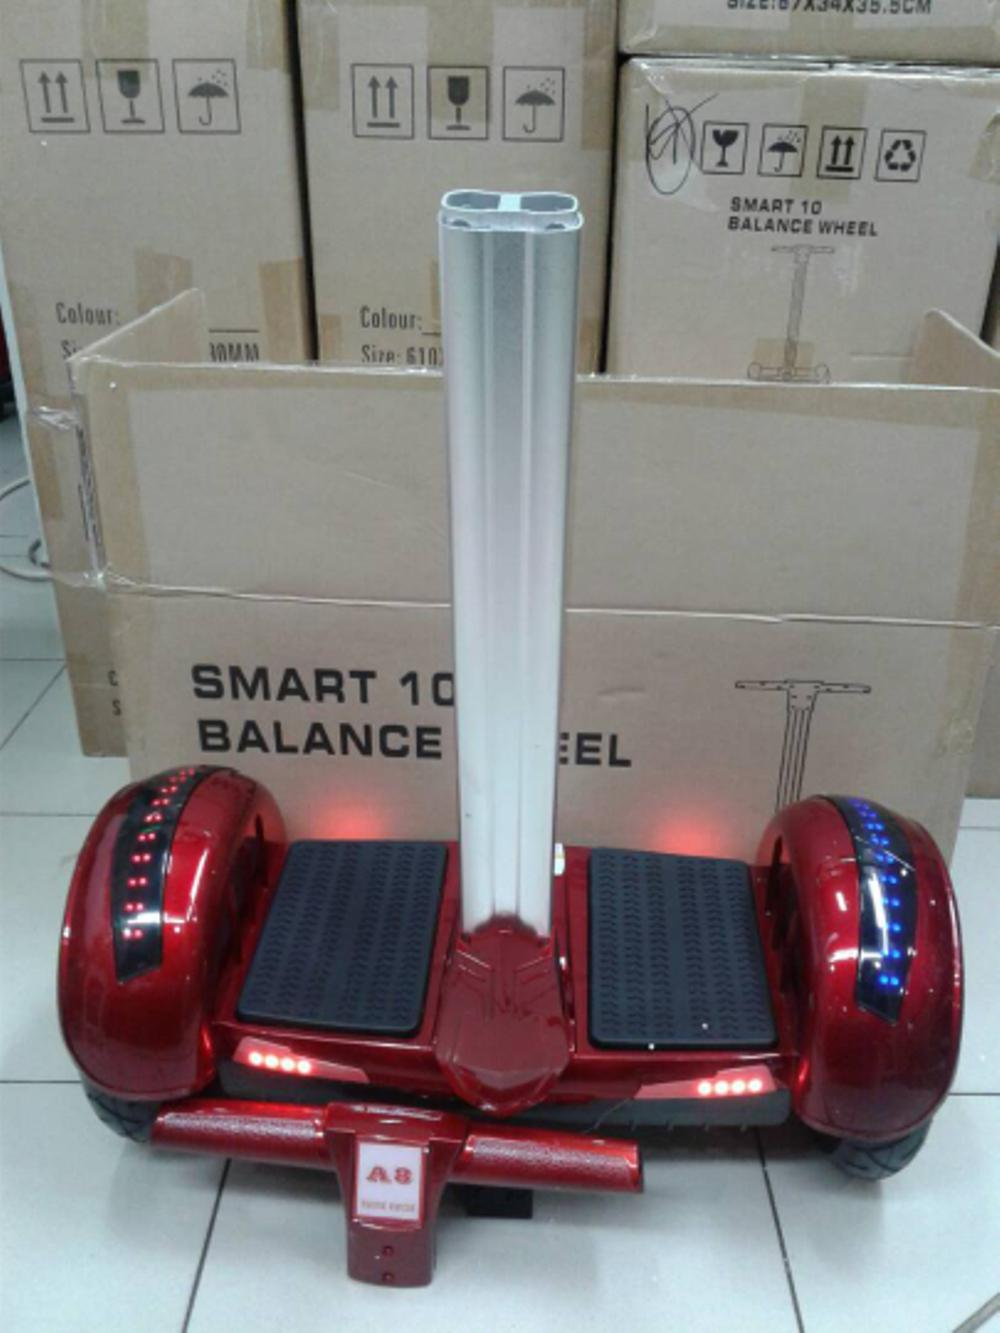 Mini Segway Ban Angin 10inch & Self Balance Car & Hoverboard & Smart Balance Car Merah By Sumber Rejeki_shop.